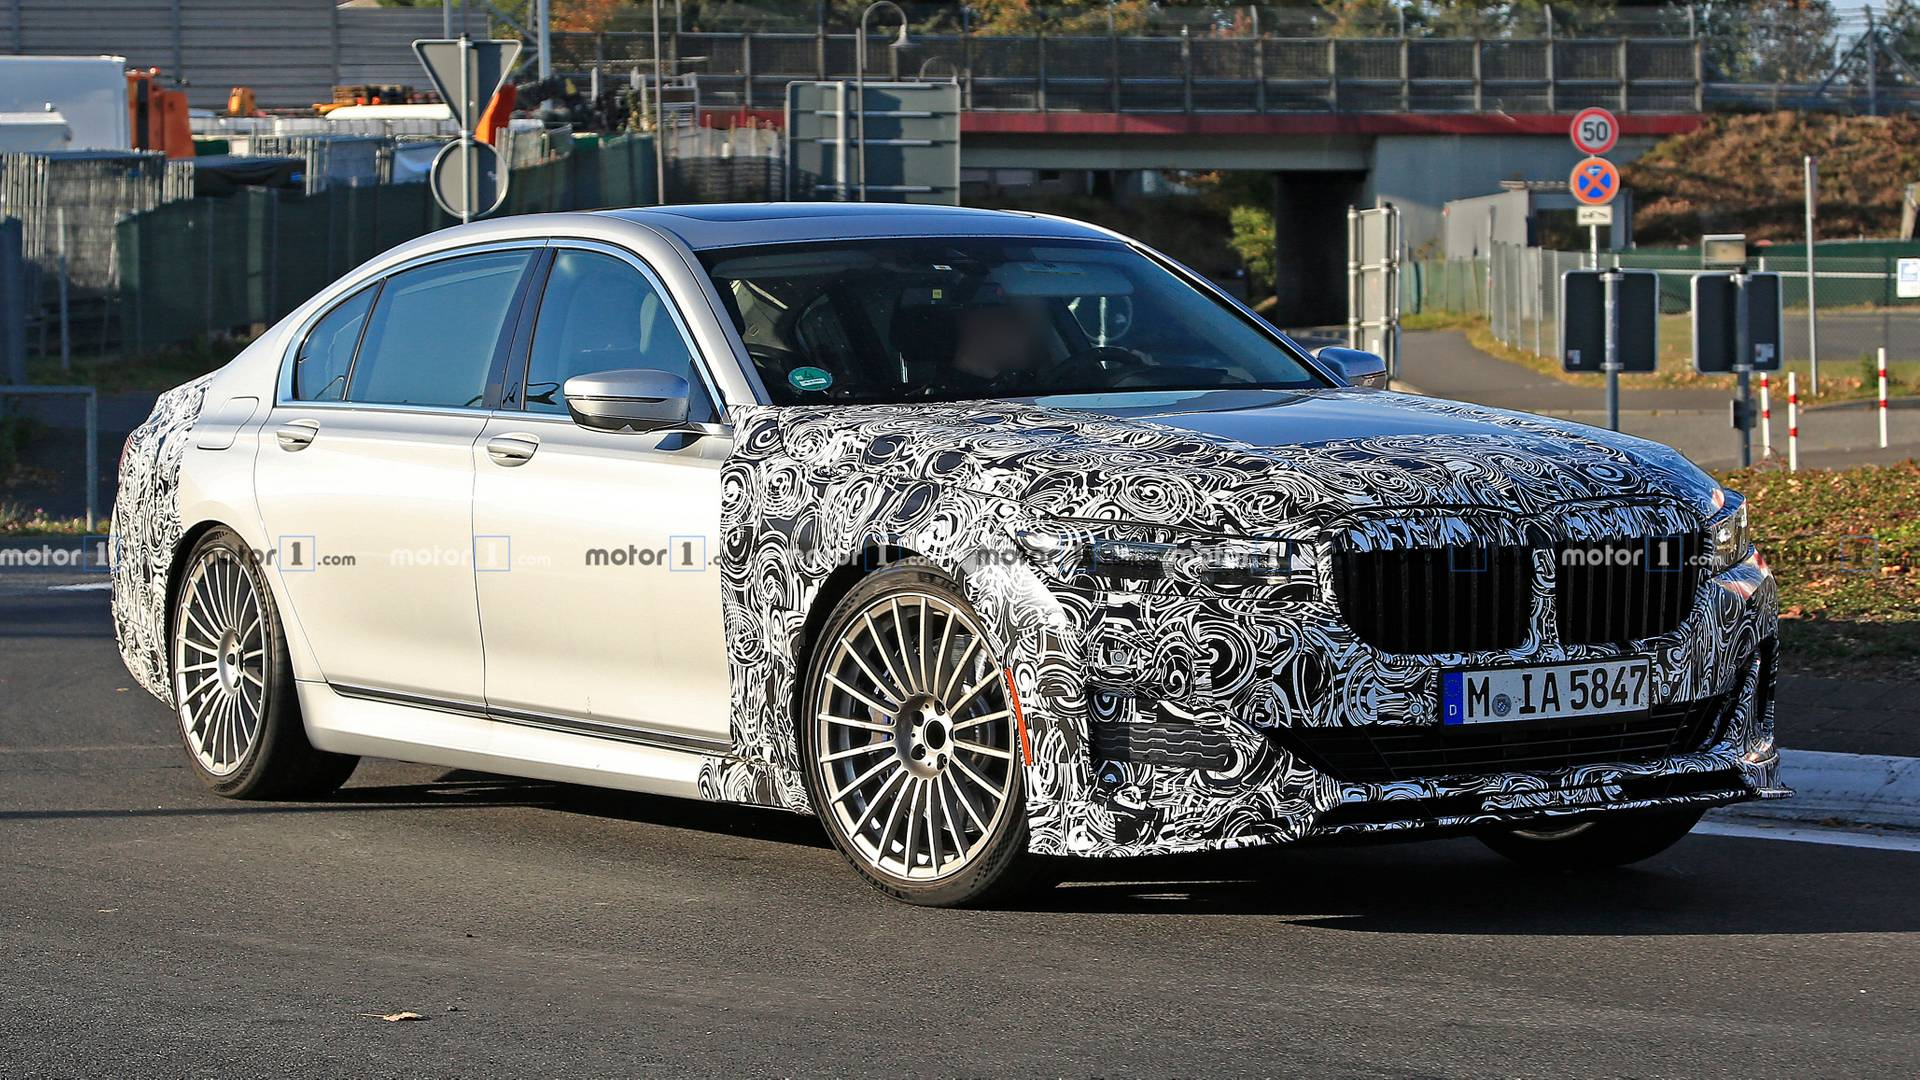 Alpina B7 Spied Exercising Its Bmw Bones At The Ring Update